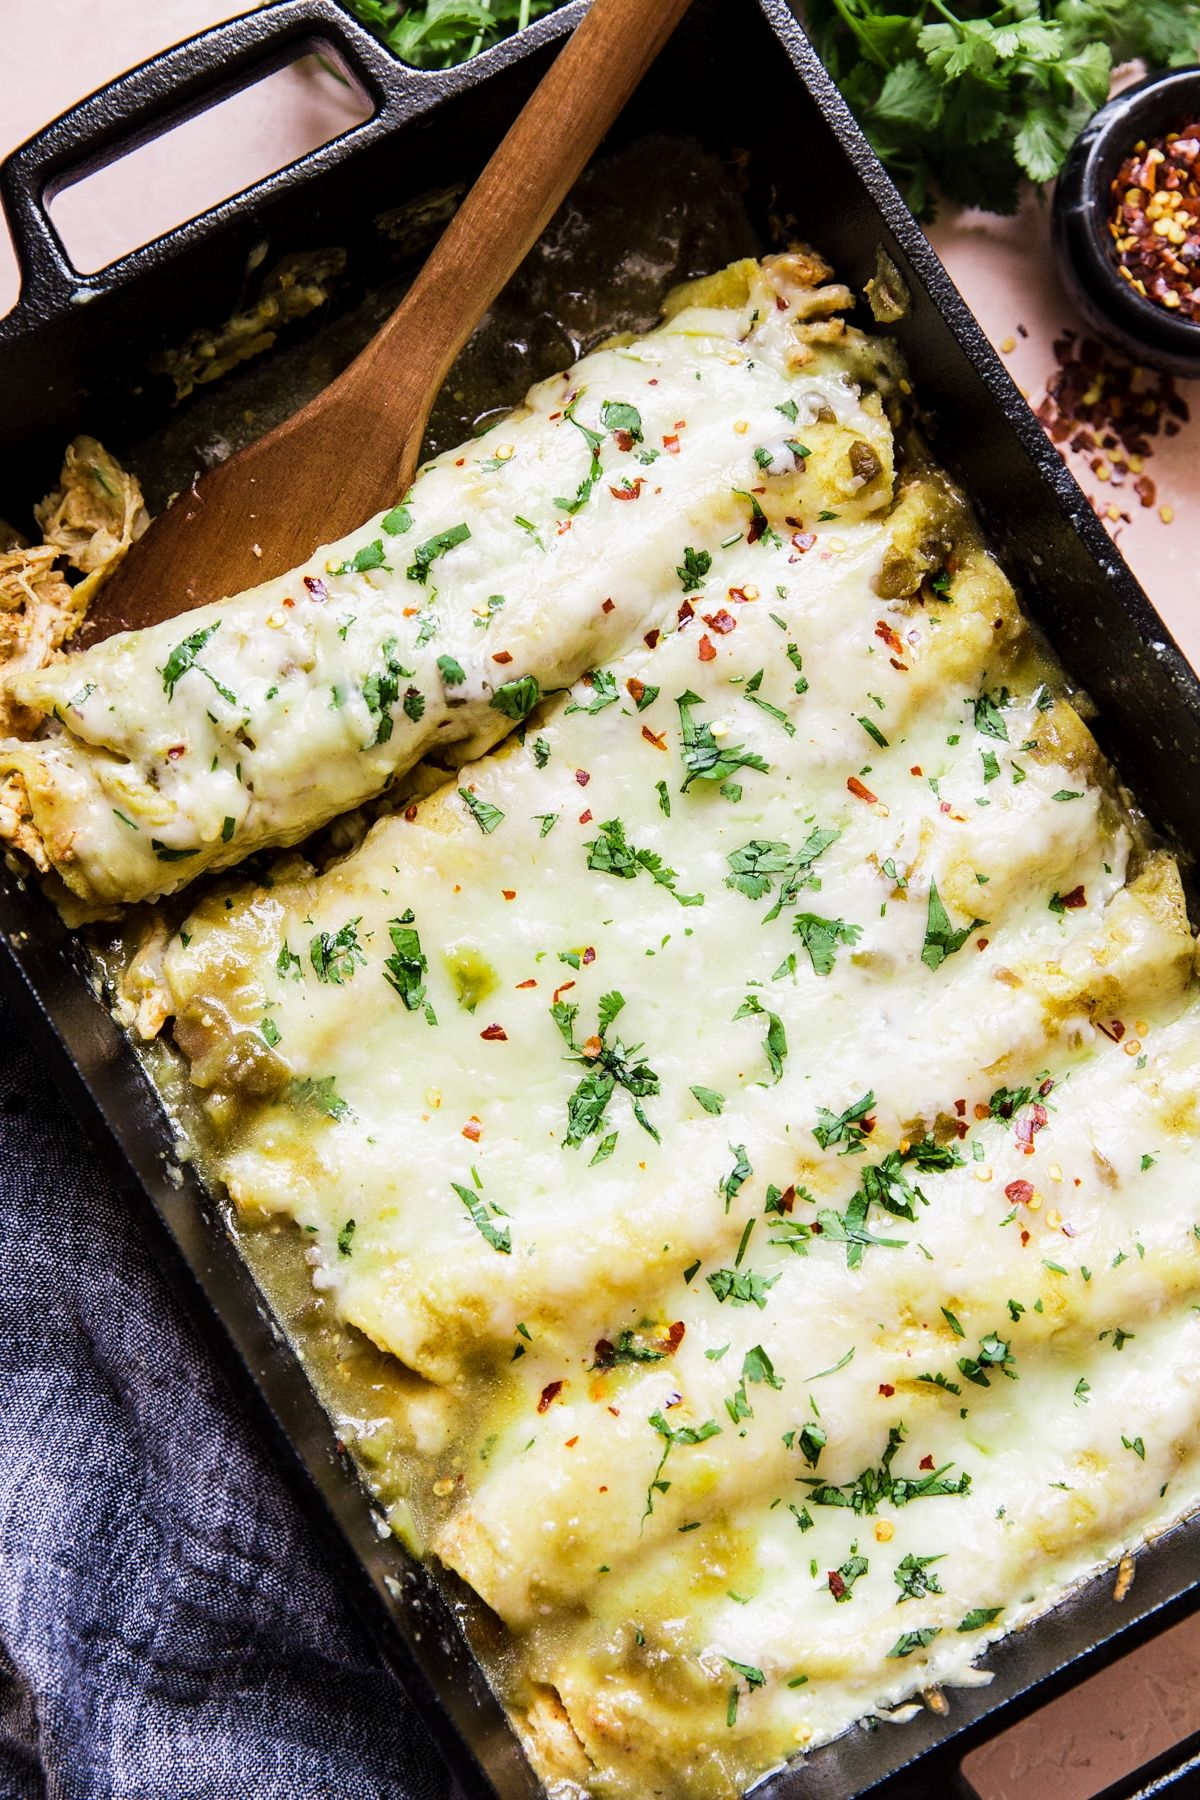 Green Chicken Enchiladas by The Modern Proper. Creamy, cheesy, and so very easy—these comforting chicken enchiladas are slathered in tangy green enchilada sauce and are everything you're craving today (and, let's be honest, every day).